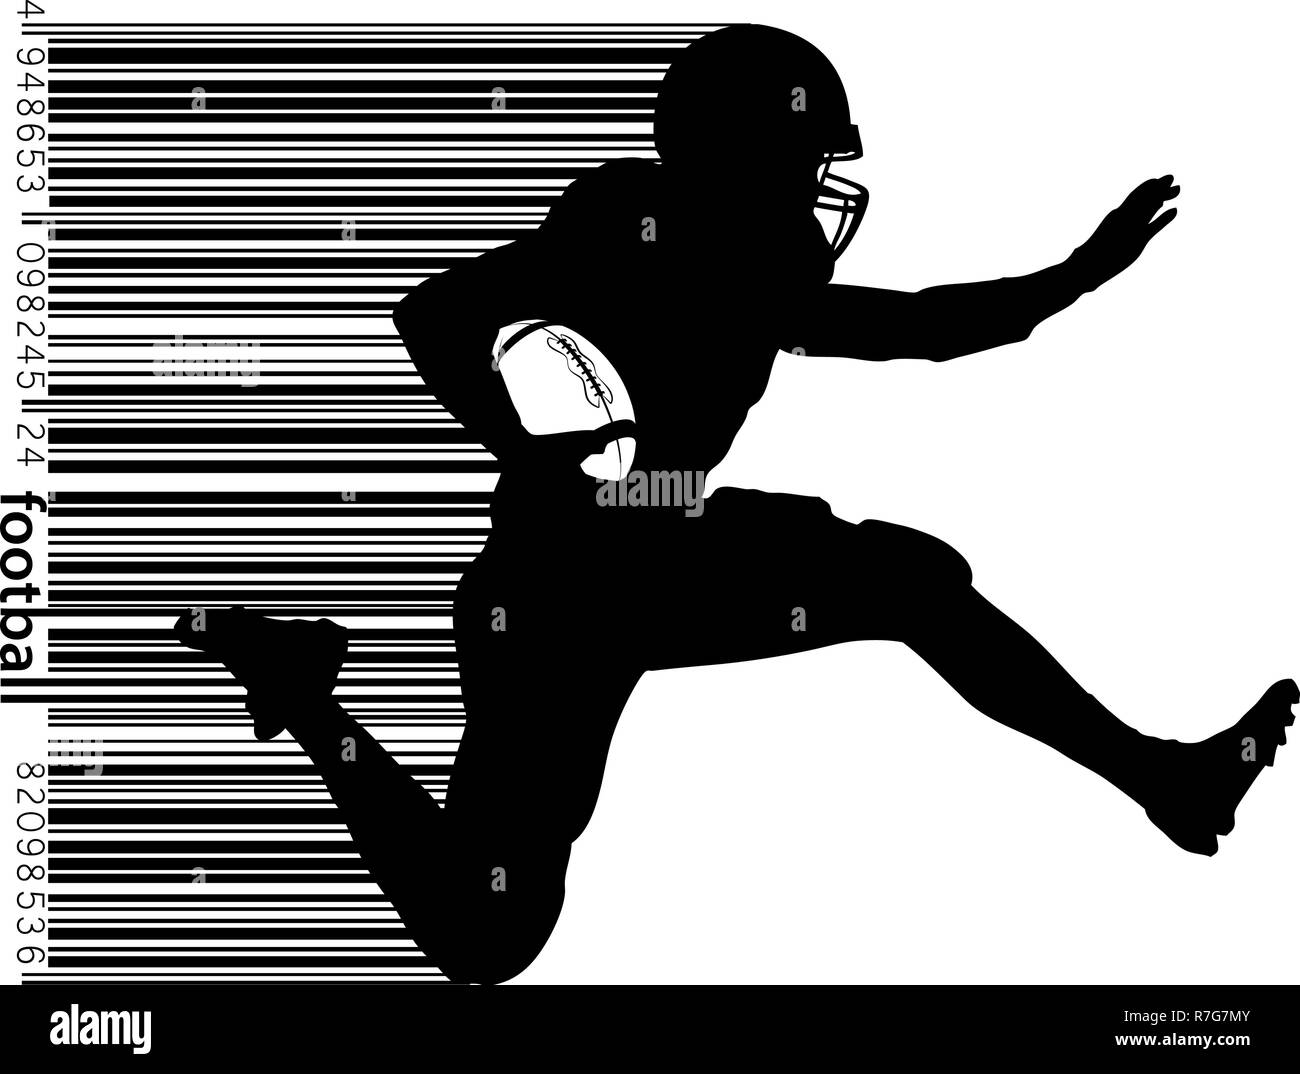 Silhouette of a football player. Vector illustration - Stock Image